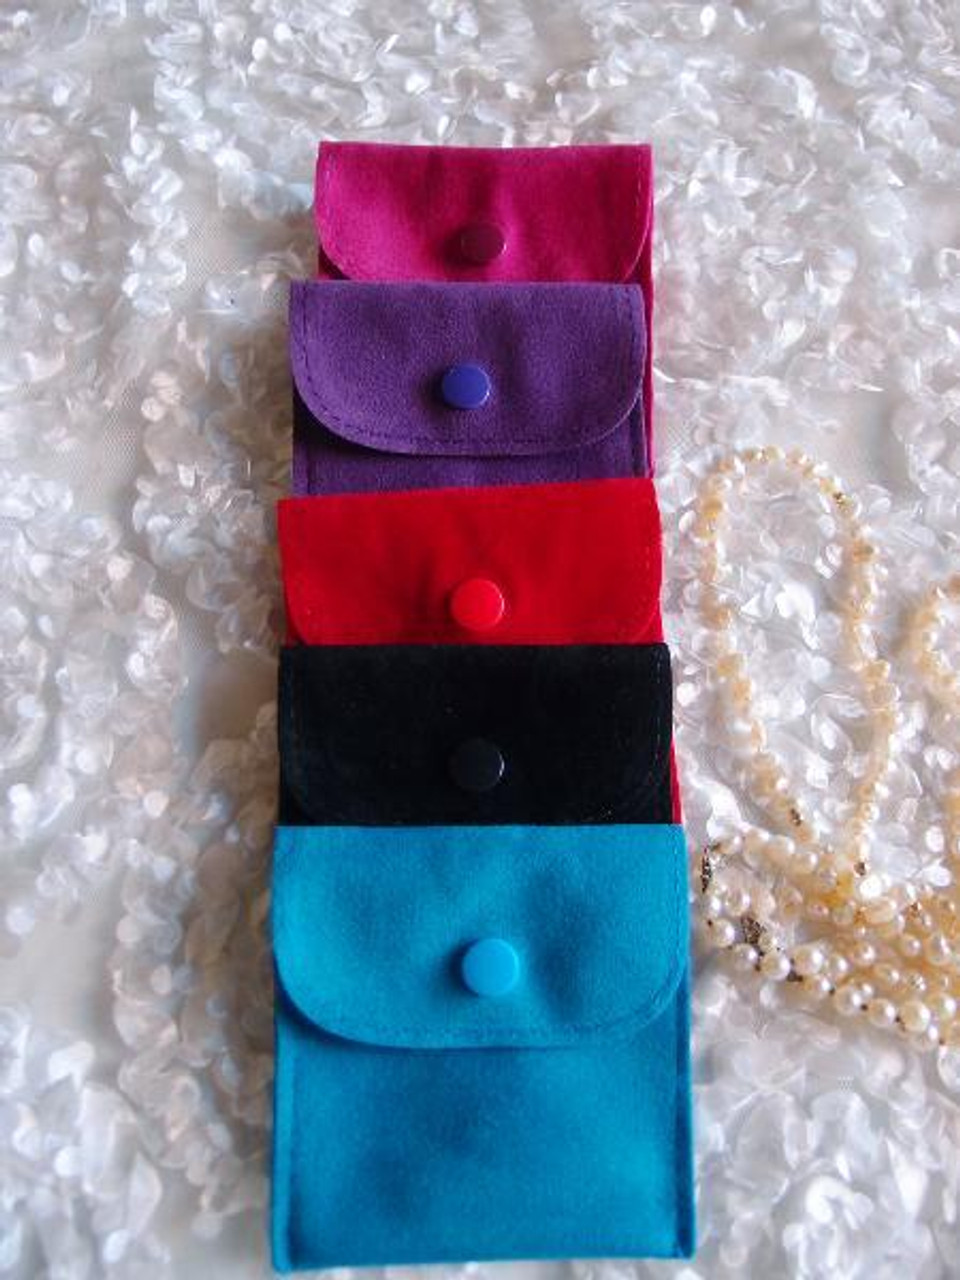 3 x 3 inches Purple Velvet Flapover Jewelry Pouch with Snap Fastener J134-26, Wholesale Velvet Jewelry Bags | Packaging Decor, Gift Packaging